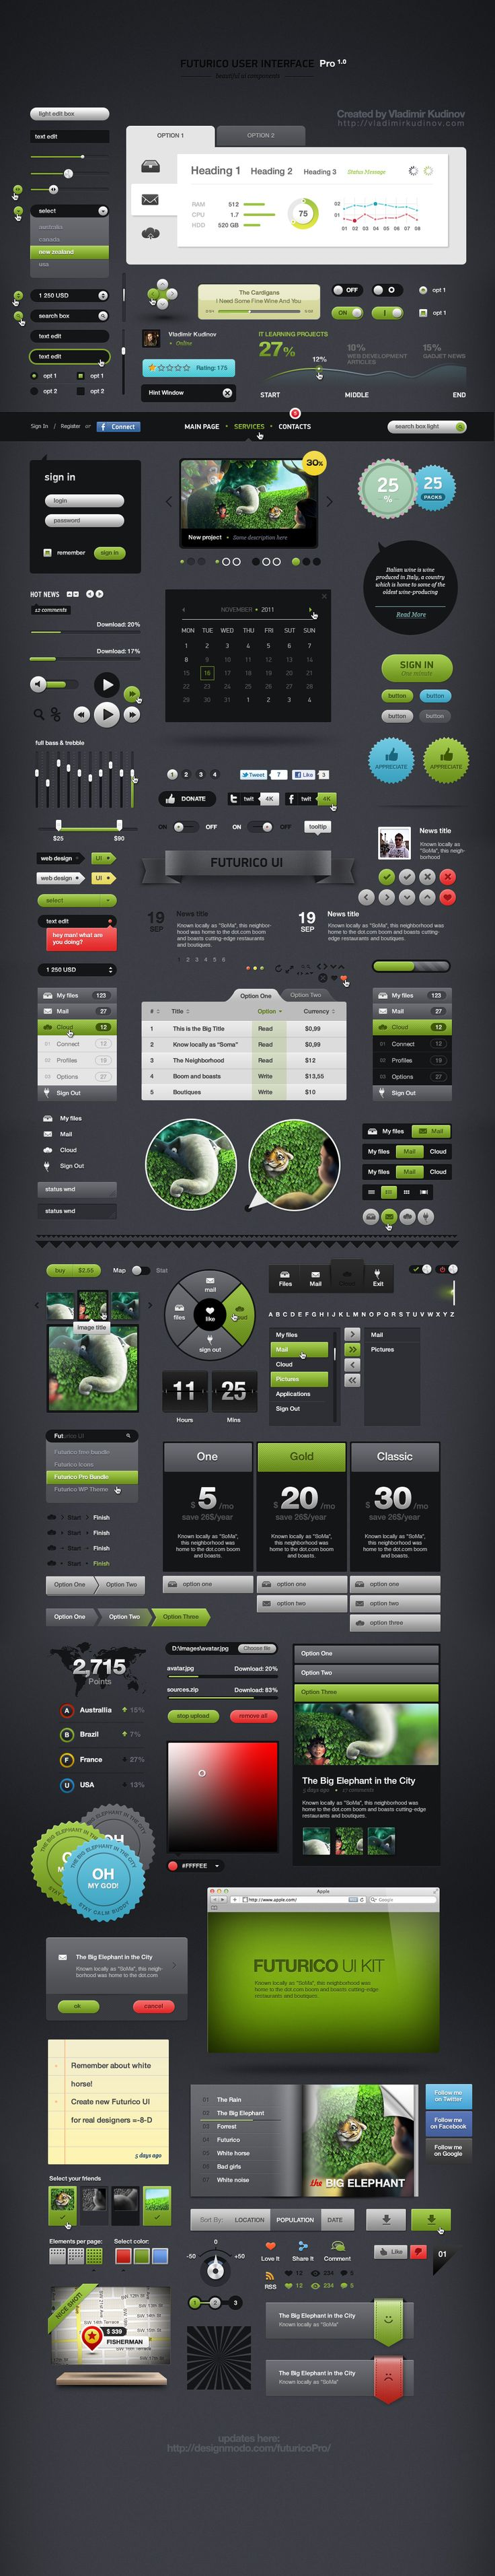 Futurico UI Pro Interface Elements Pack